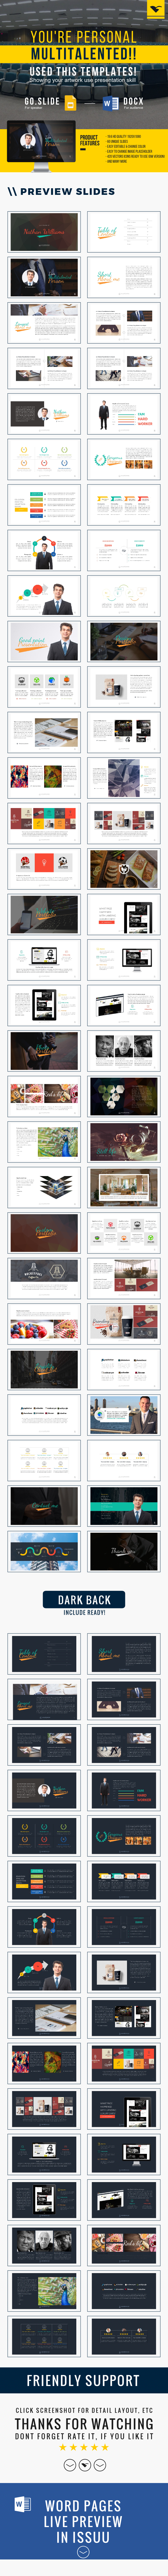 Multitalent personal portfolio powerpoint template on Behance